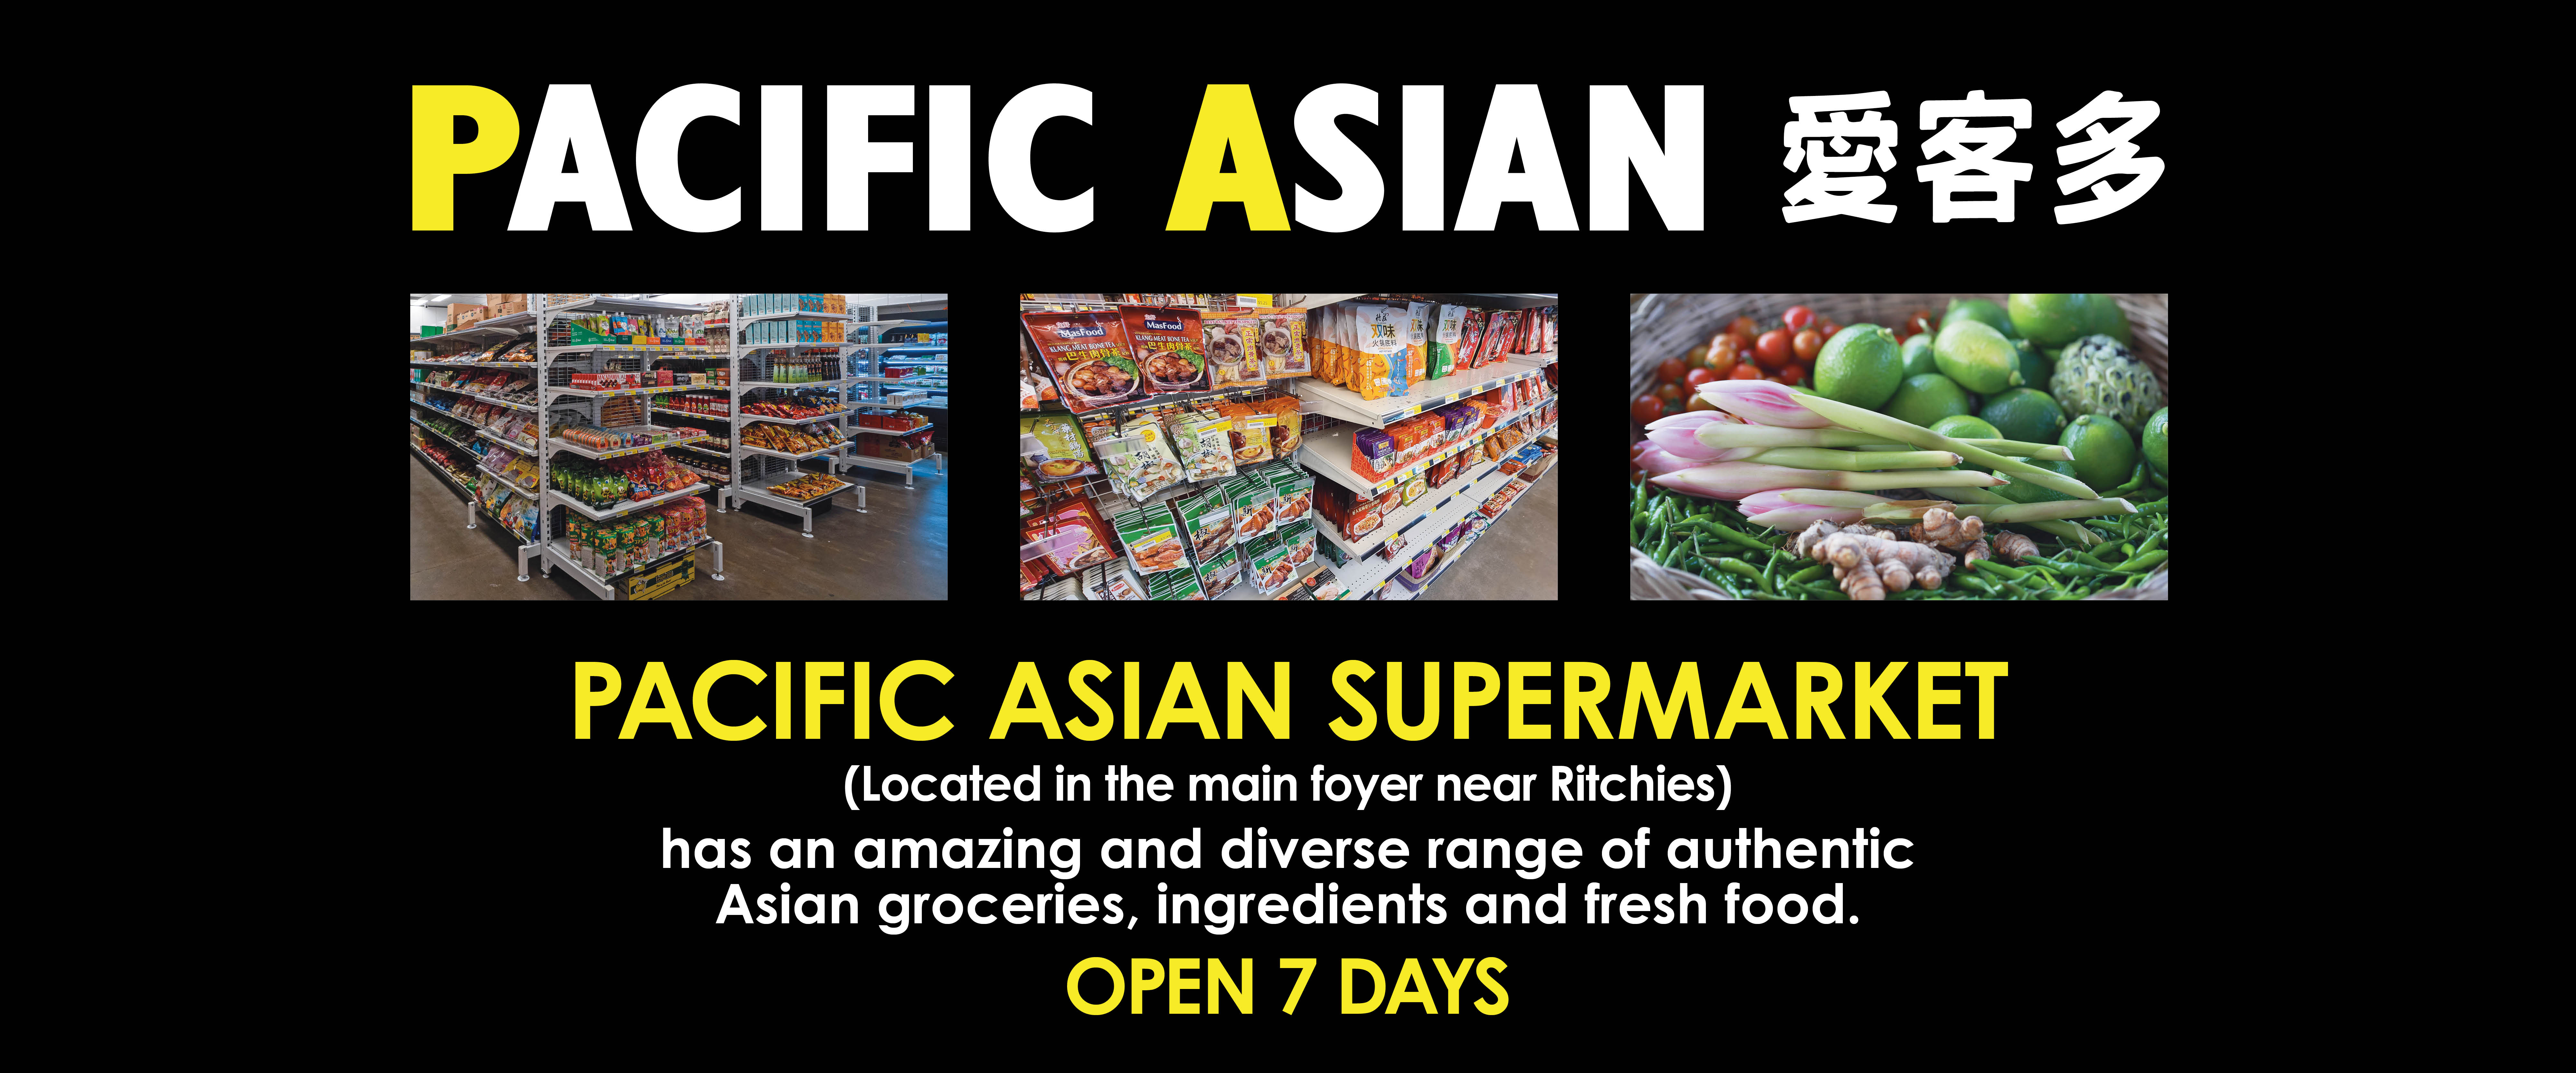 ad for Pacific Asian Supermarket